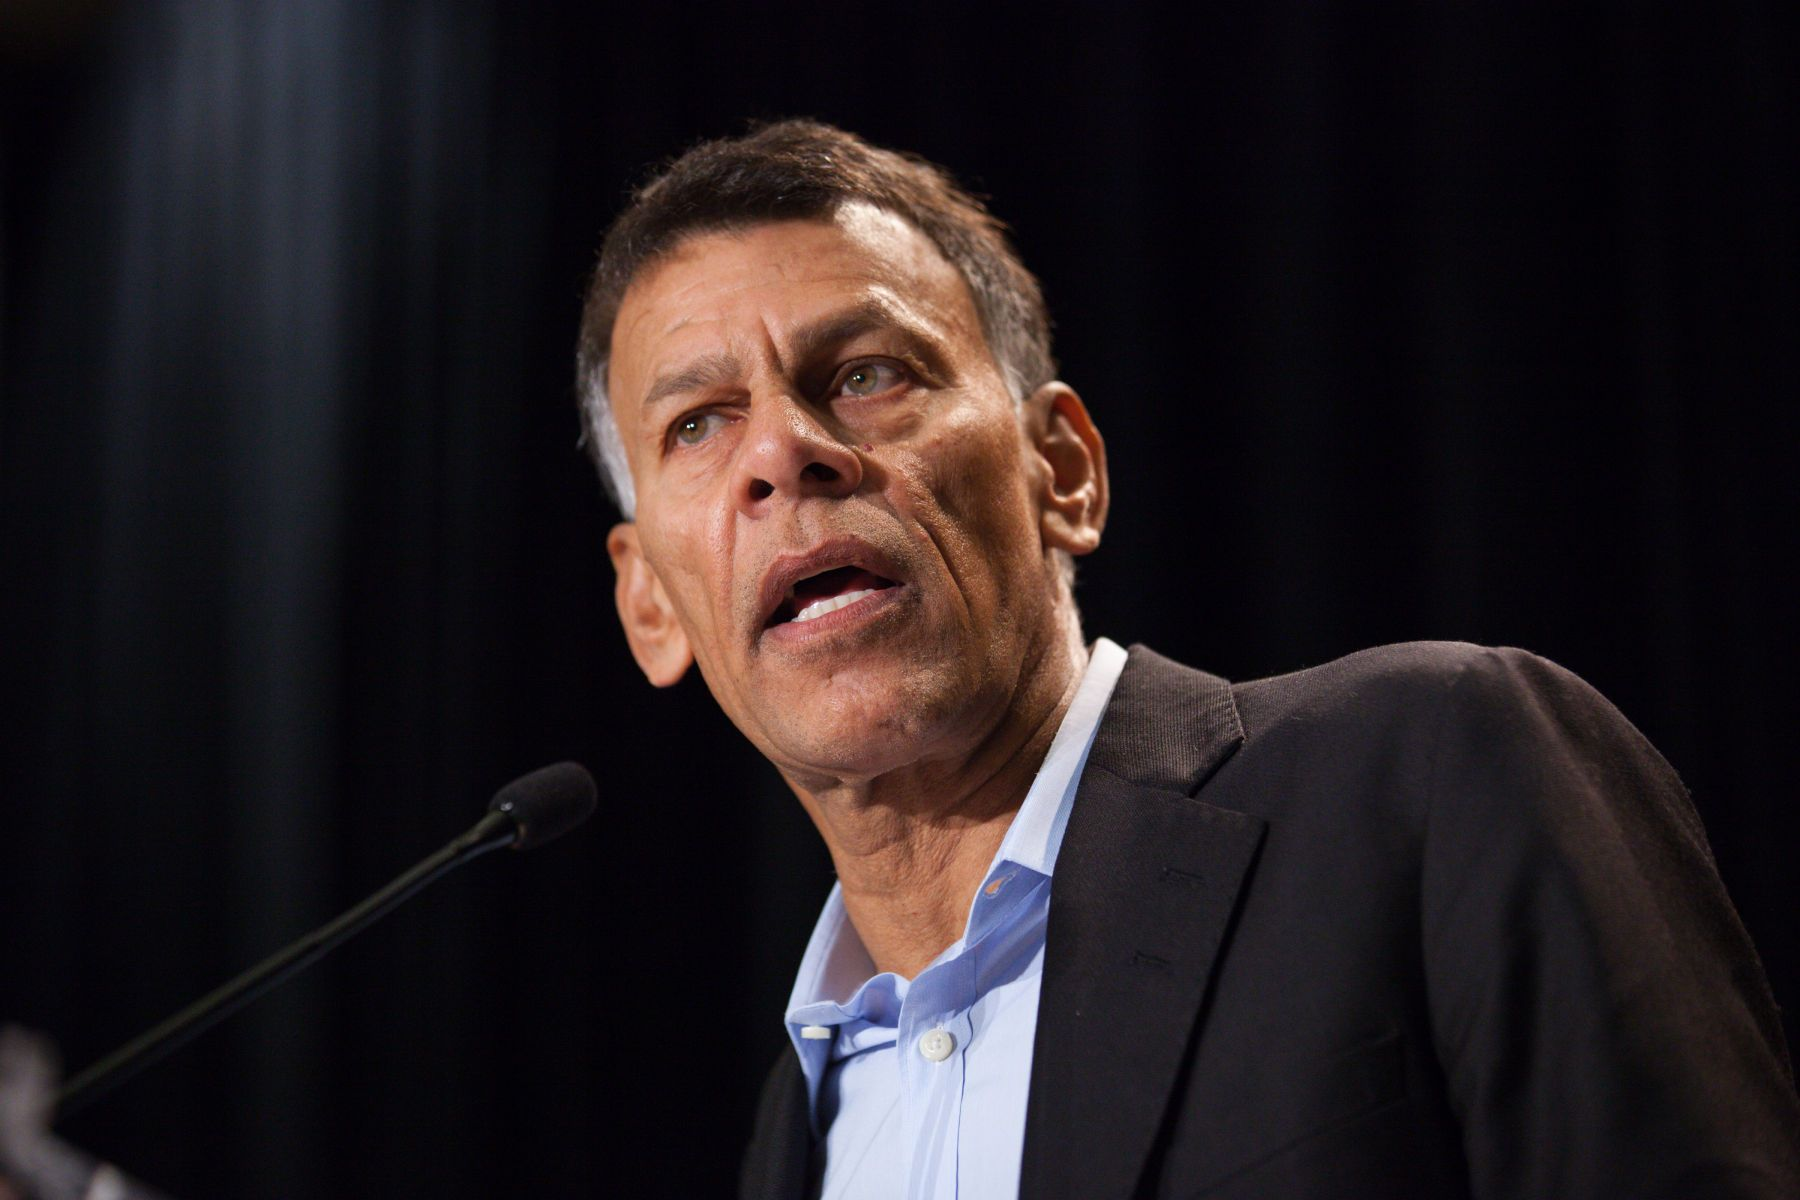 Hassan Yussuff, Canadian labour leader and president of the Canadian Labour Congress.